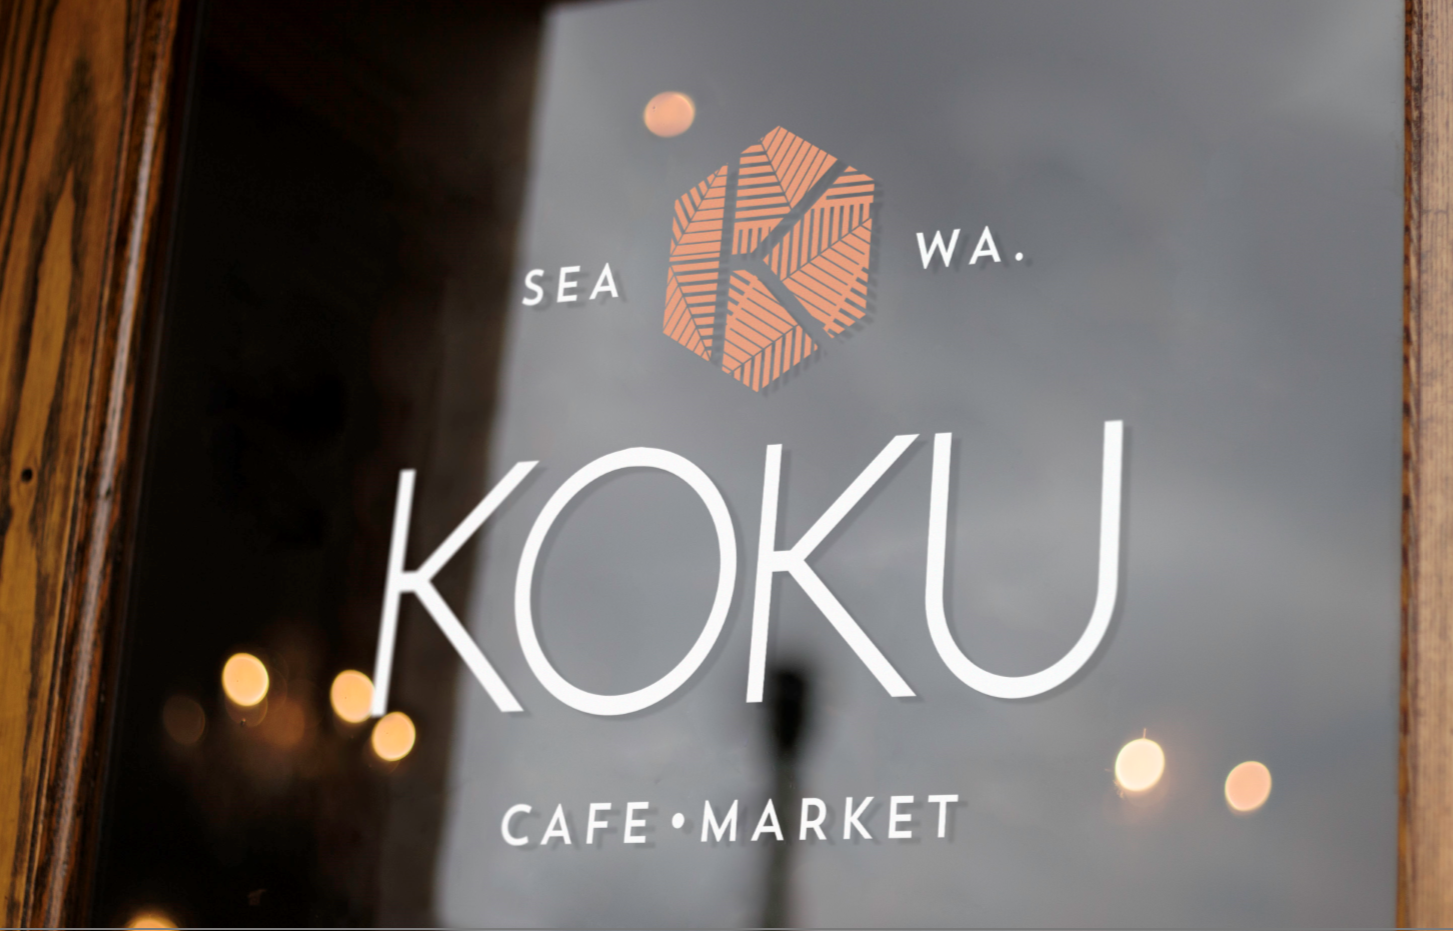 Eater Seattle previews KOKU ahead of our opening - May 25, 2018